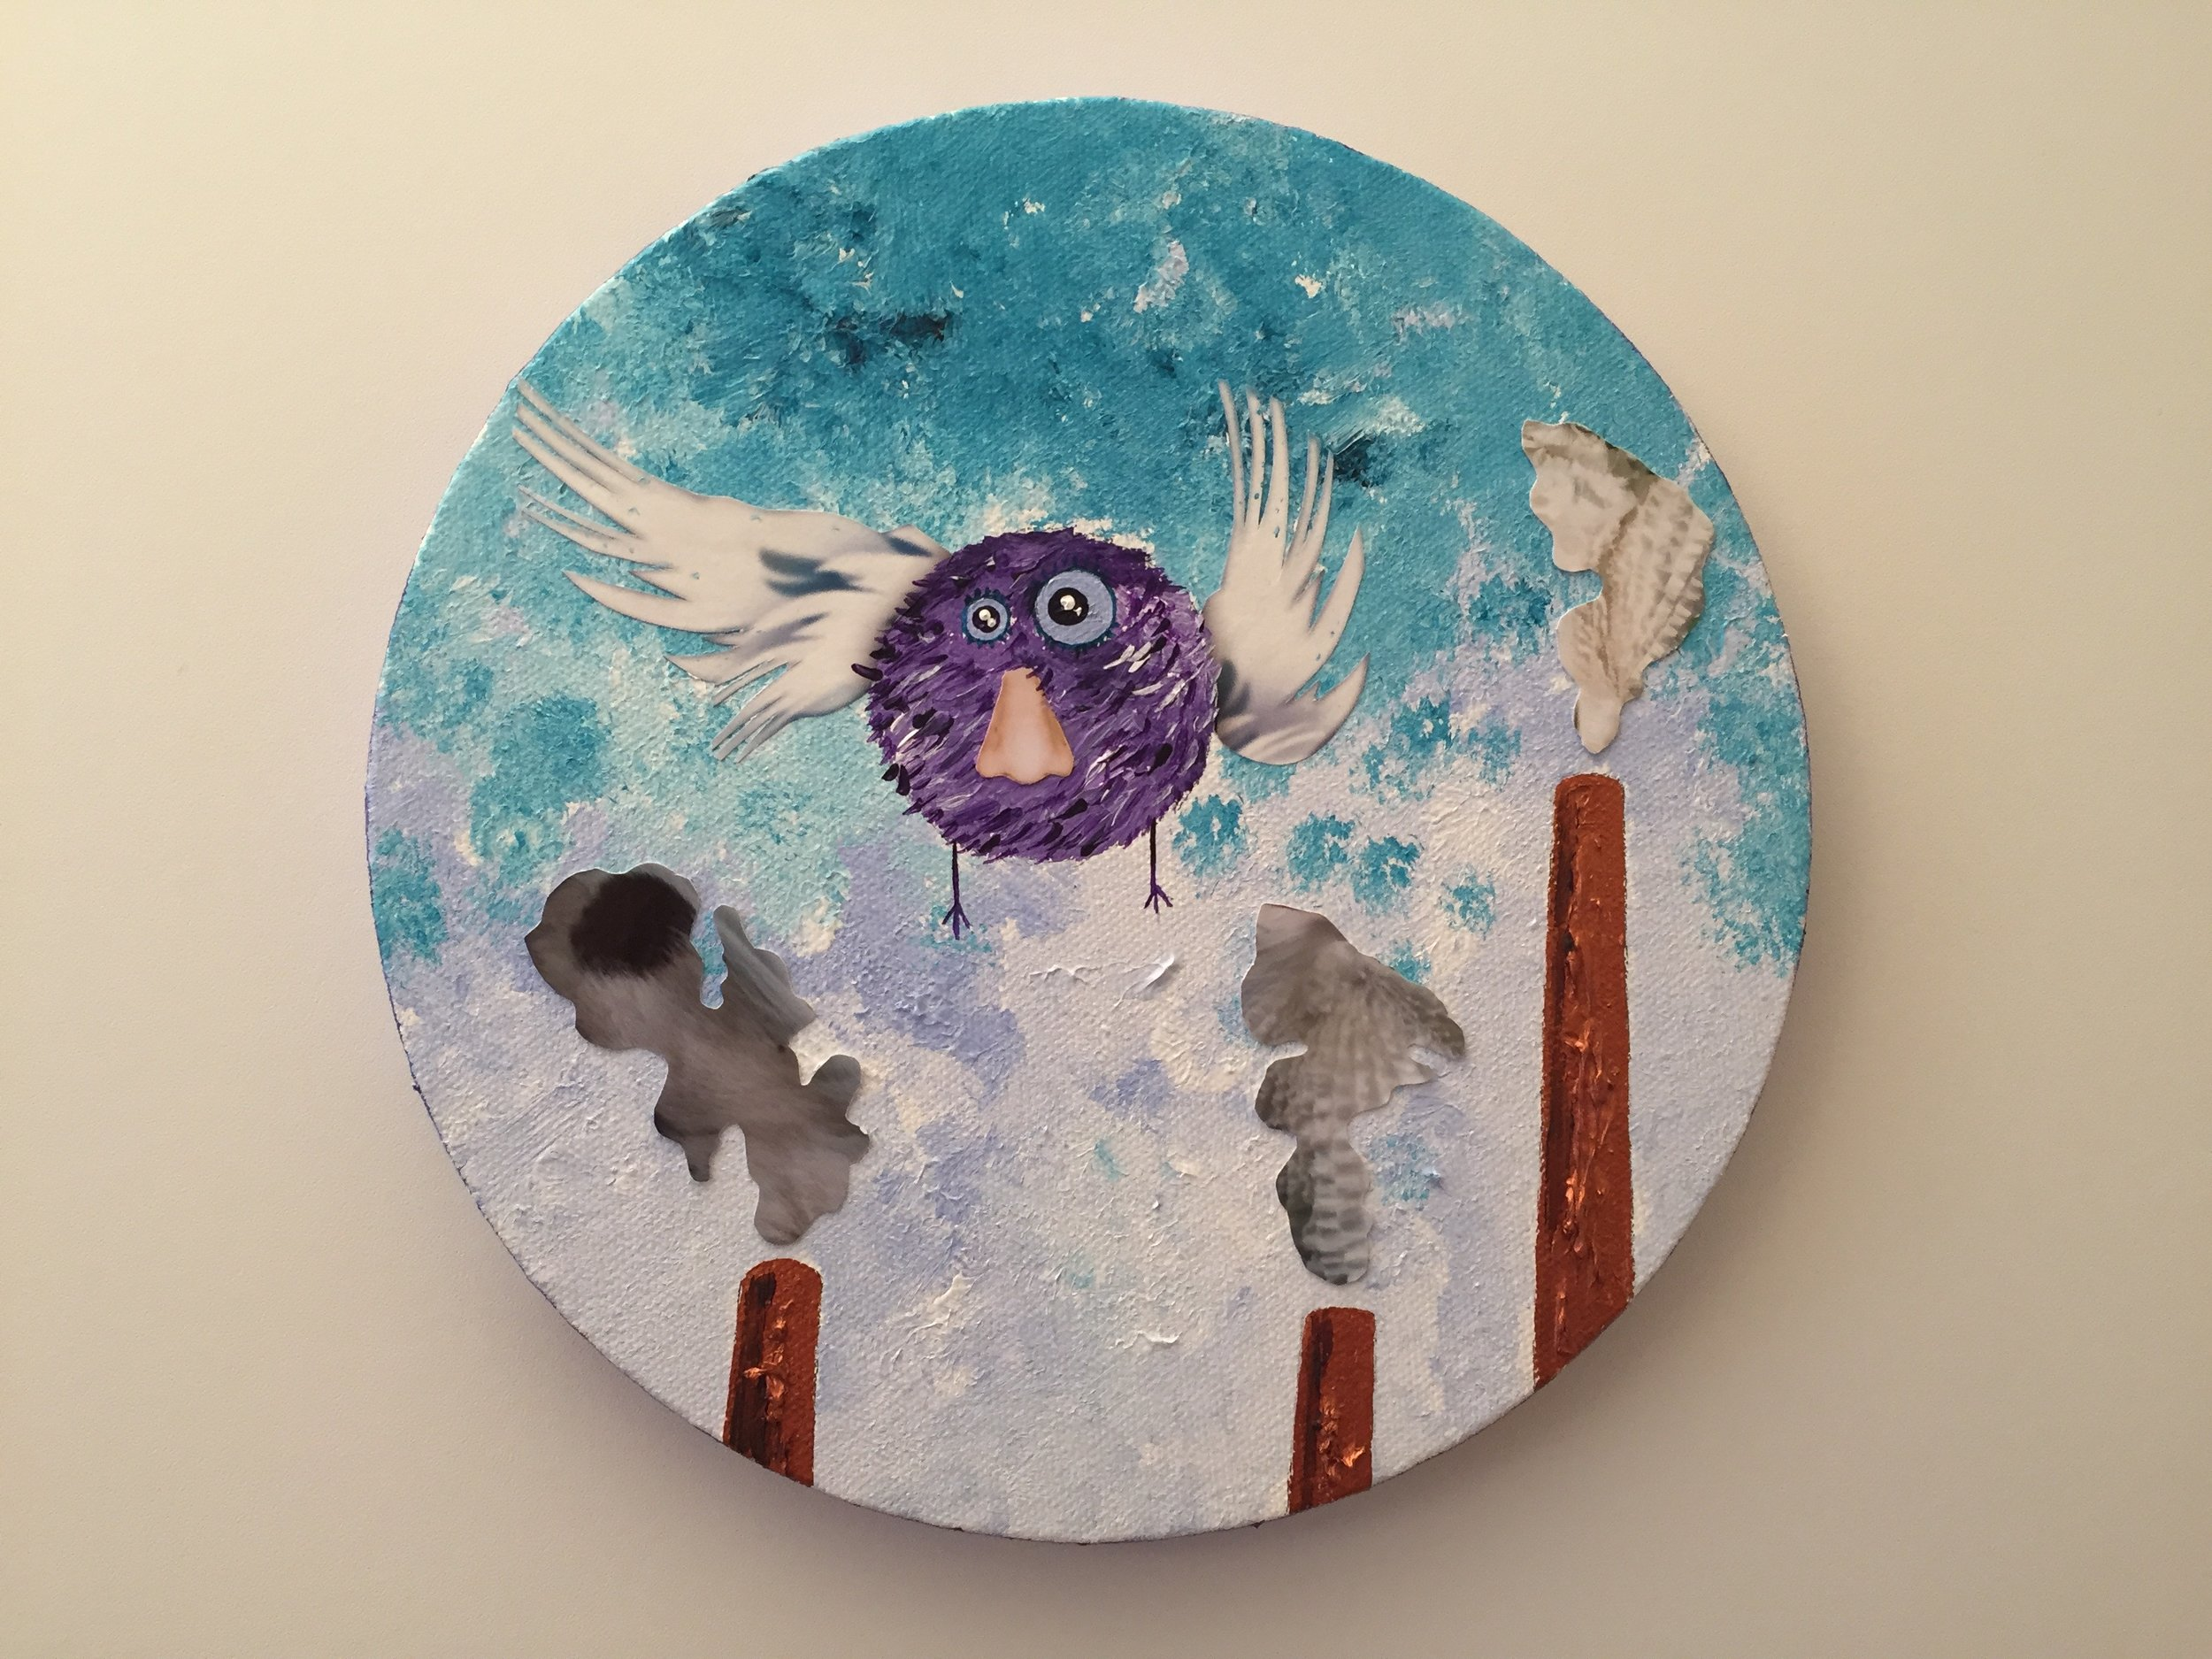 Nosebird escapes  2013 Paints and collage on canvas 20cm diameter  More information